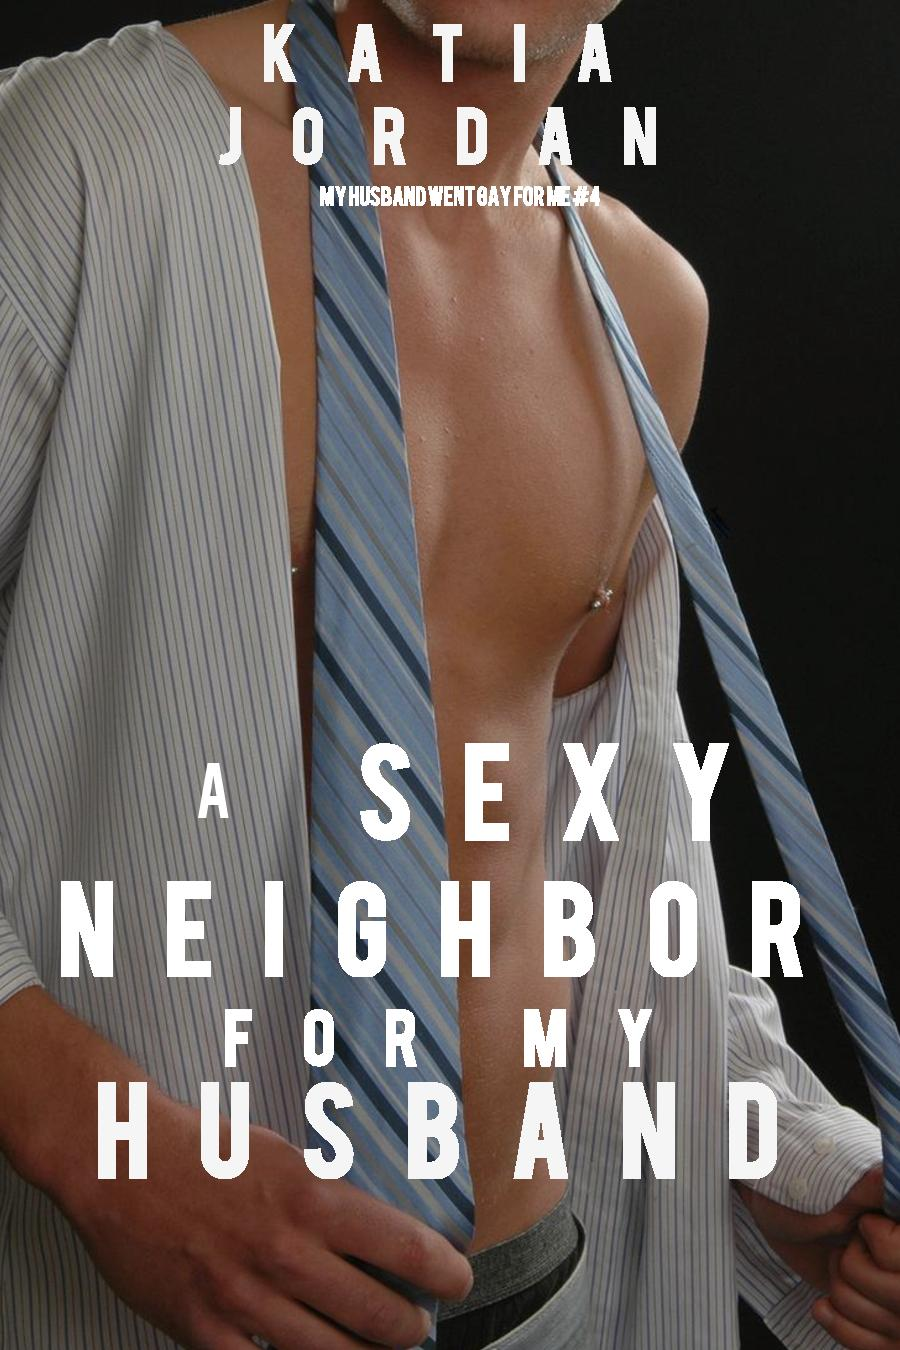 A sexy neighbor for my husband